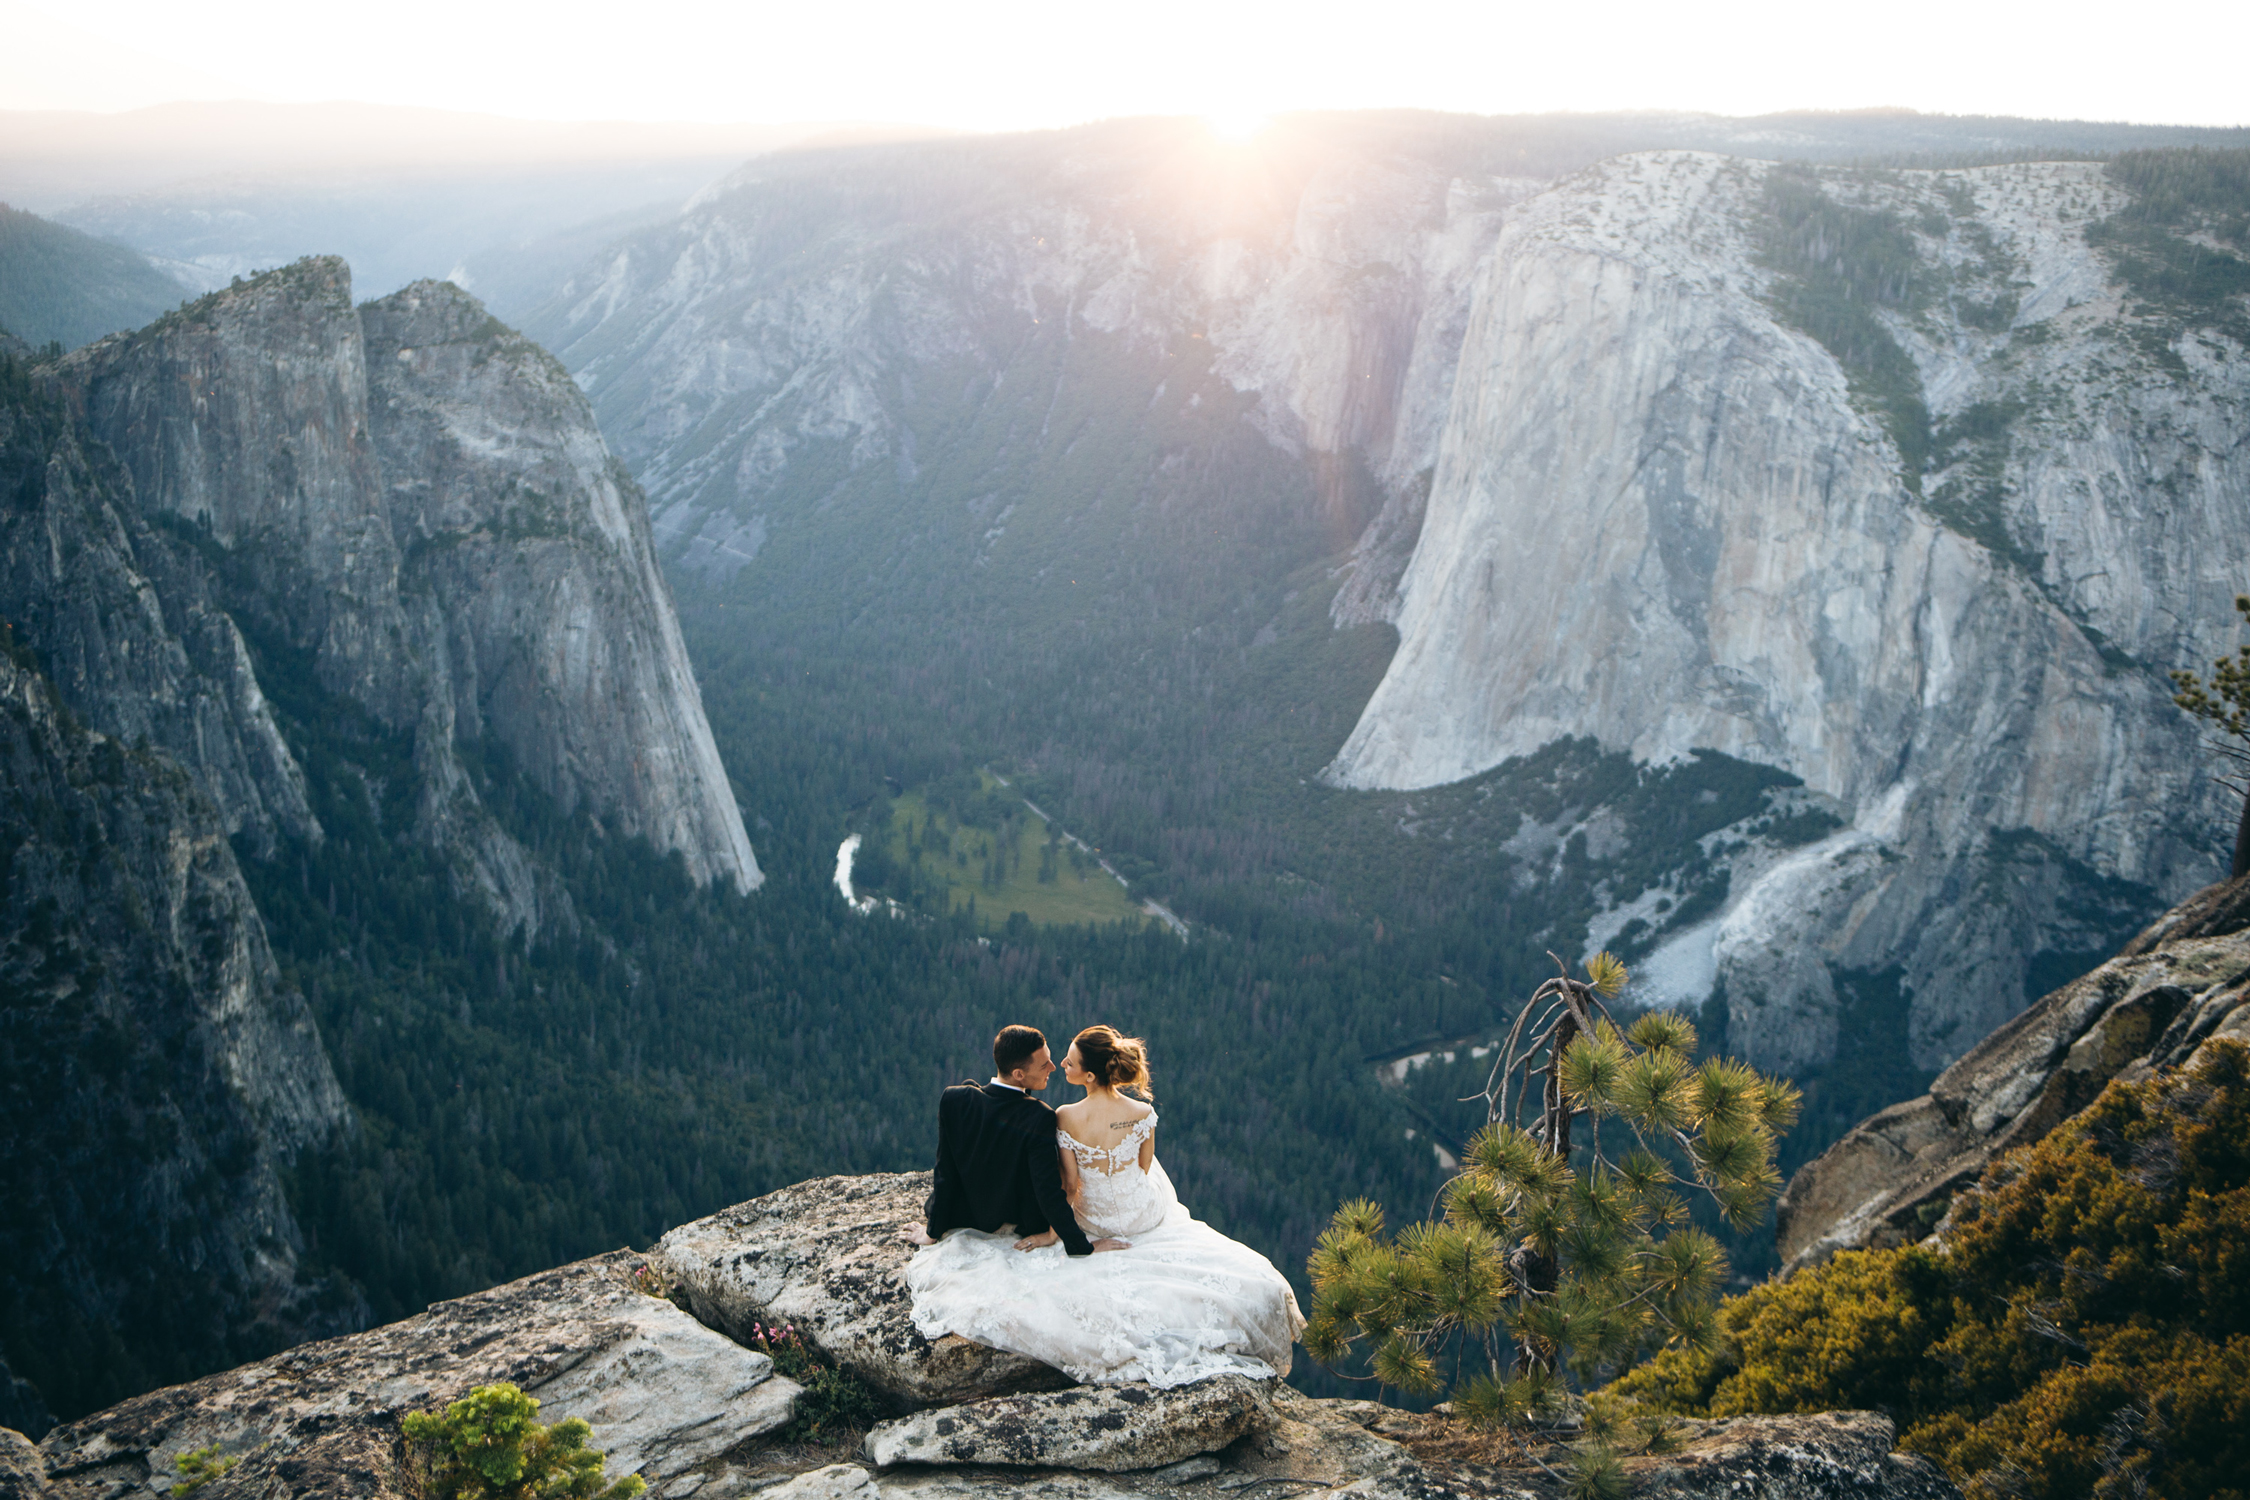 yosemite-adventure-wedding-amyjames (16).jpg